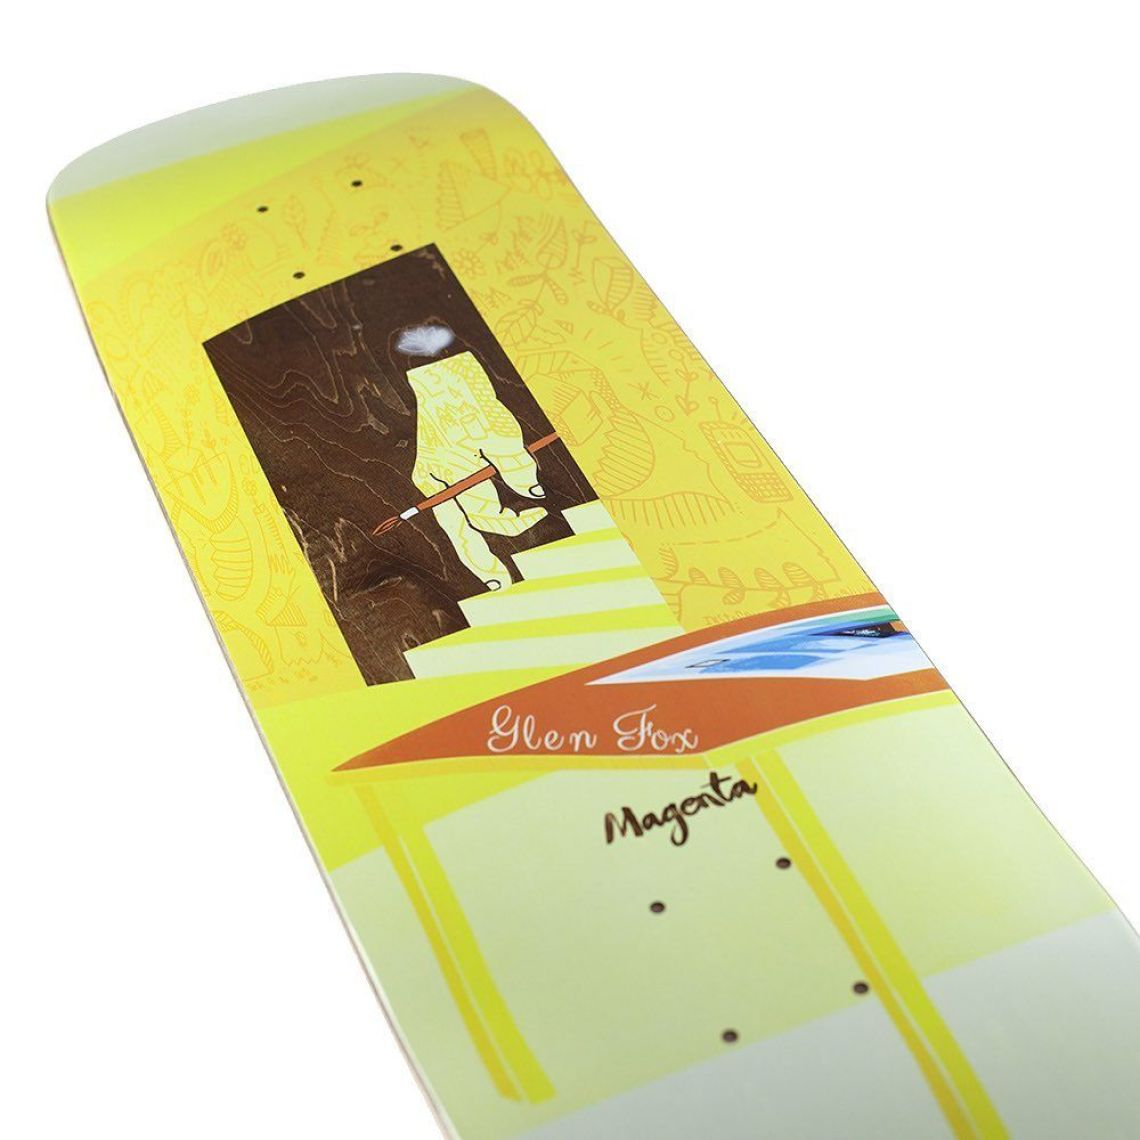 Sleep Board Series By Soy Panday For Magenta Skateboards 3